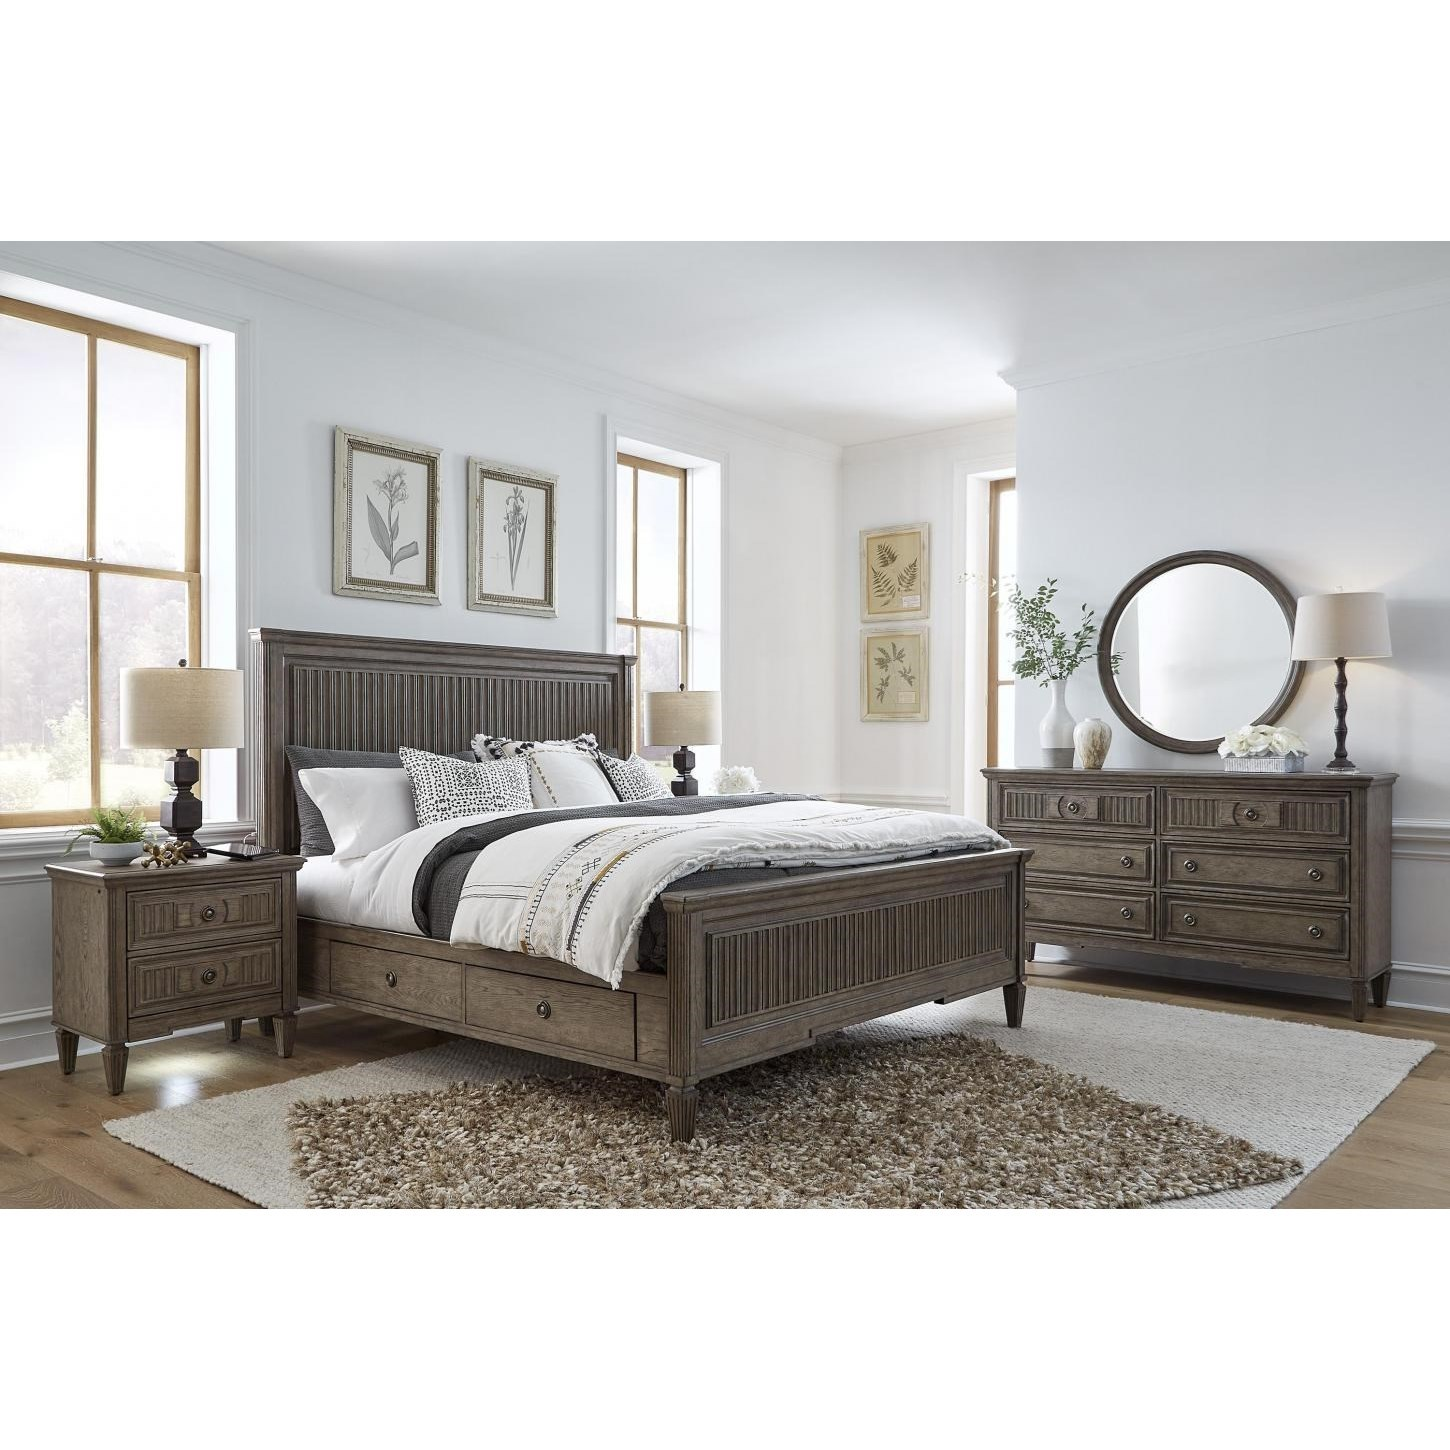 Strasbourg Queen Storage Bed Bedroom Group by Aspenhome at Walker's Furniture